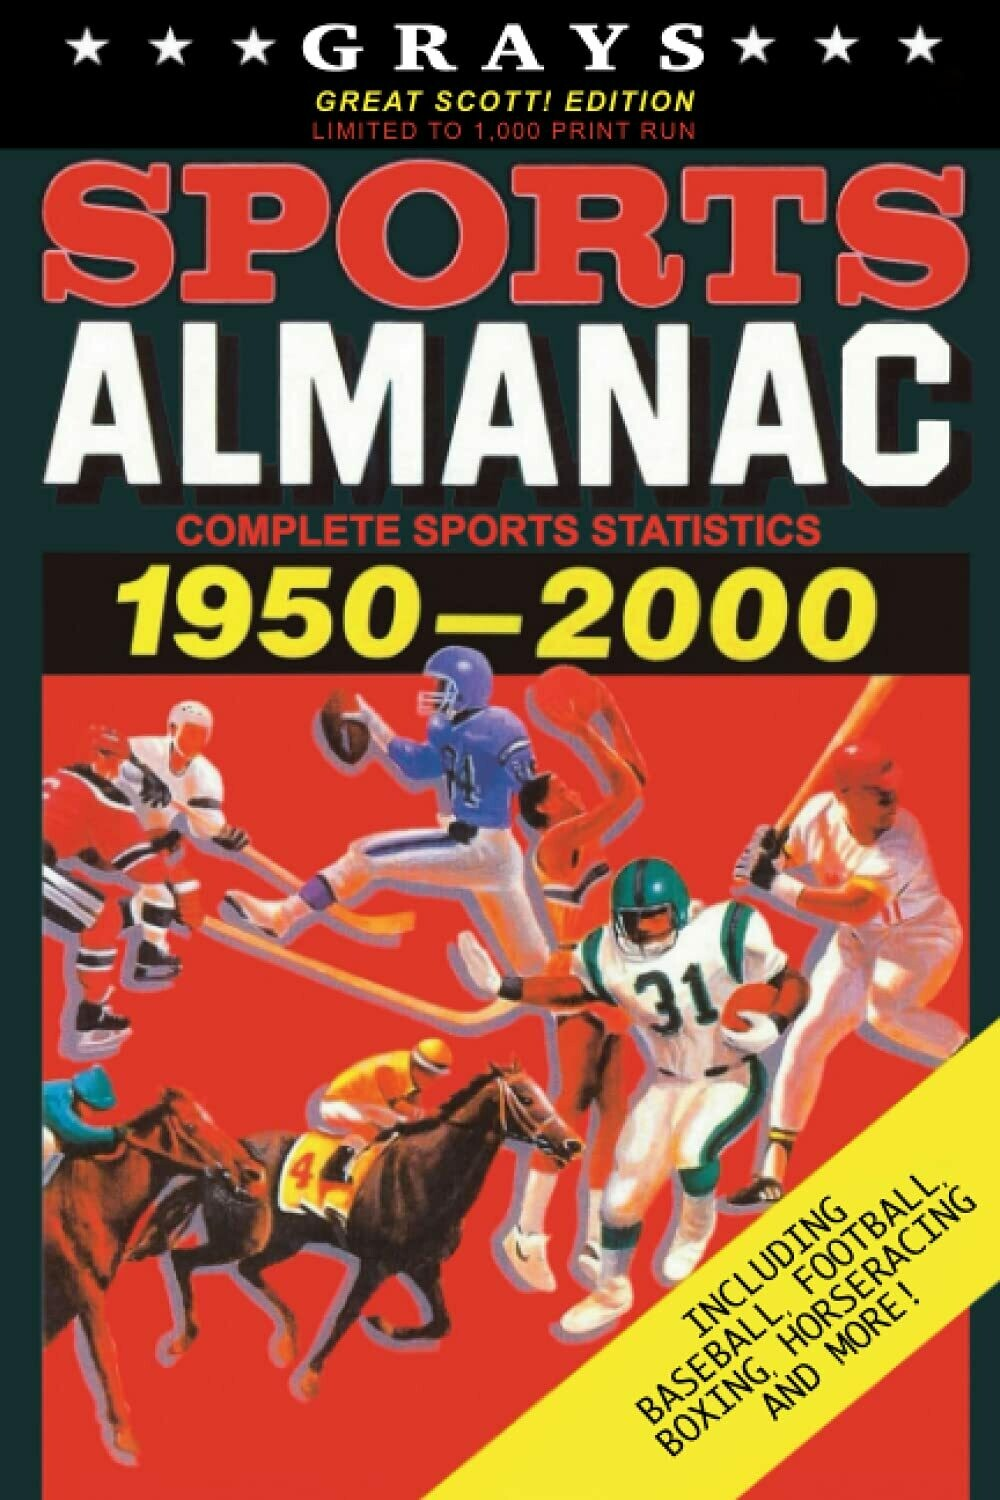 Grays Sports Almanac: Complete Sports Statistics 1950-2000 [GREAT SCOTT! Edition - LIMITED TO 1,000 PRINT RUN] Back to the Future Movie Prop Replica